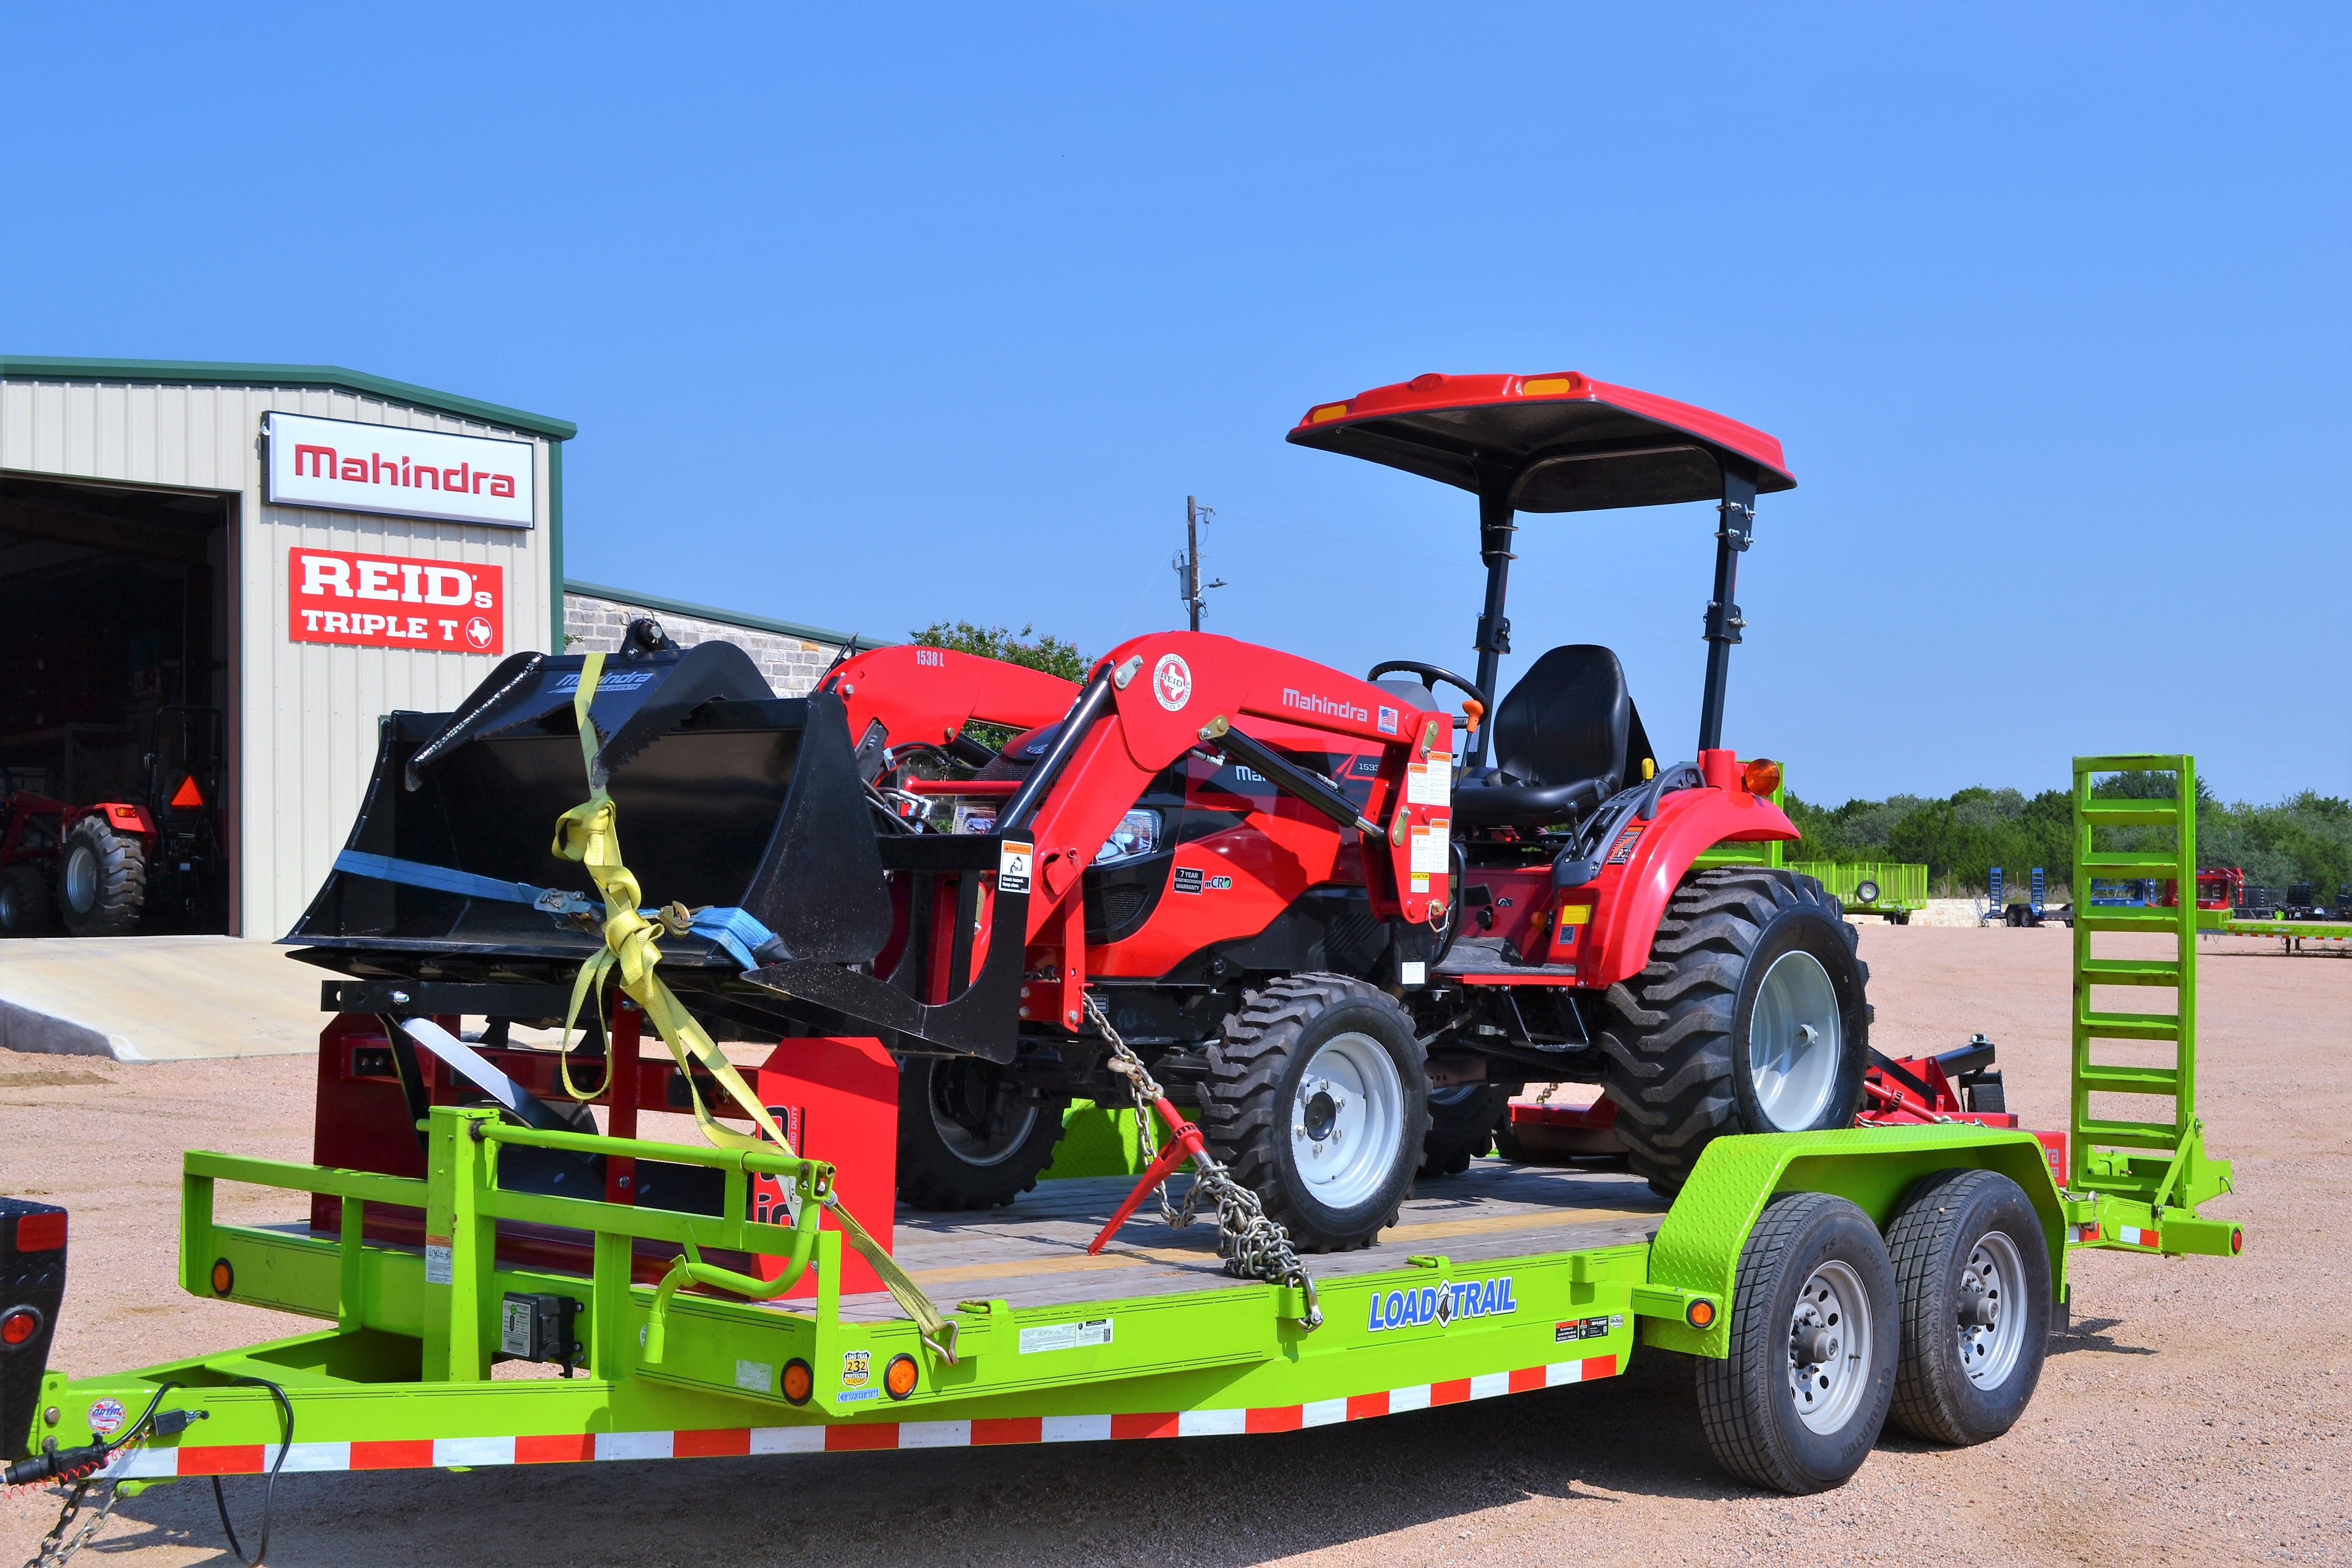 We've got GREAT DEALS on Mahindra Tractor and Load Trail